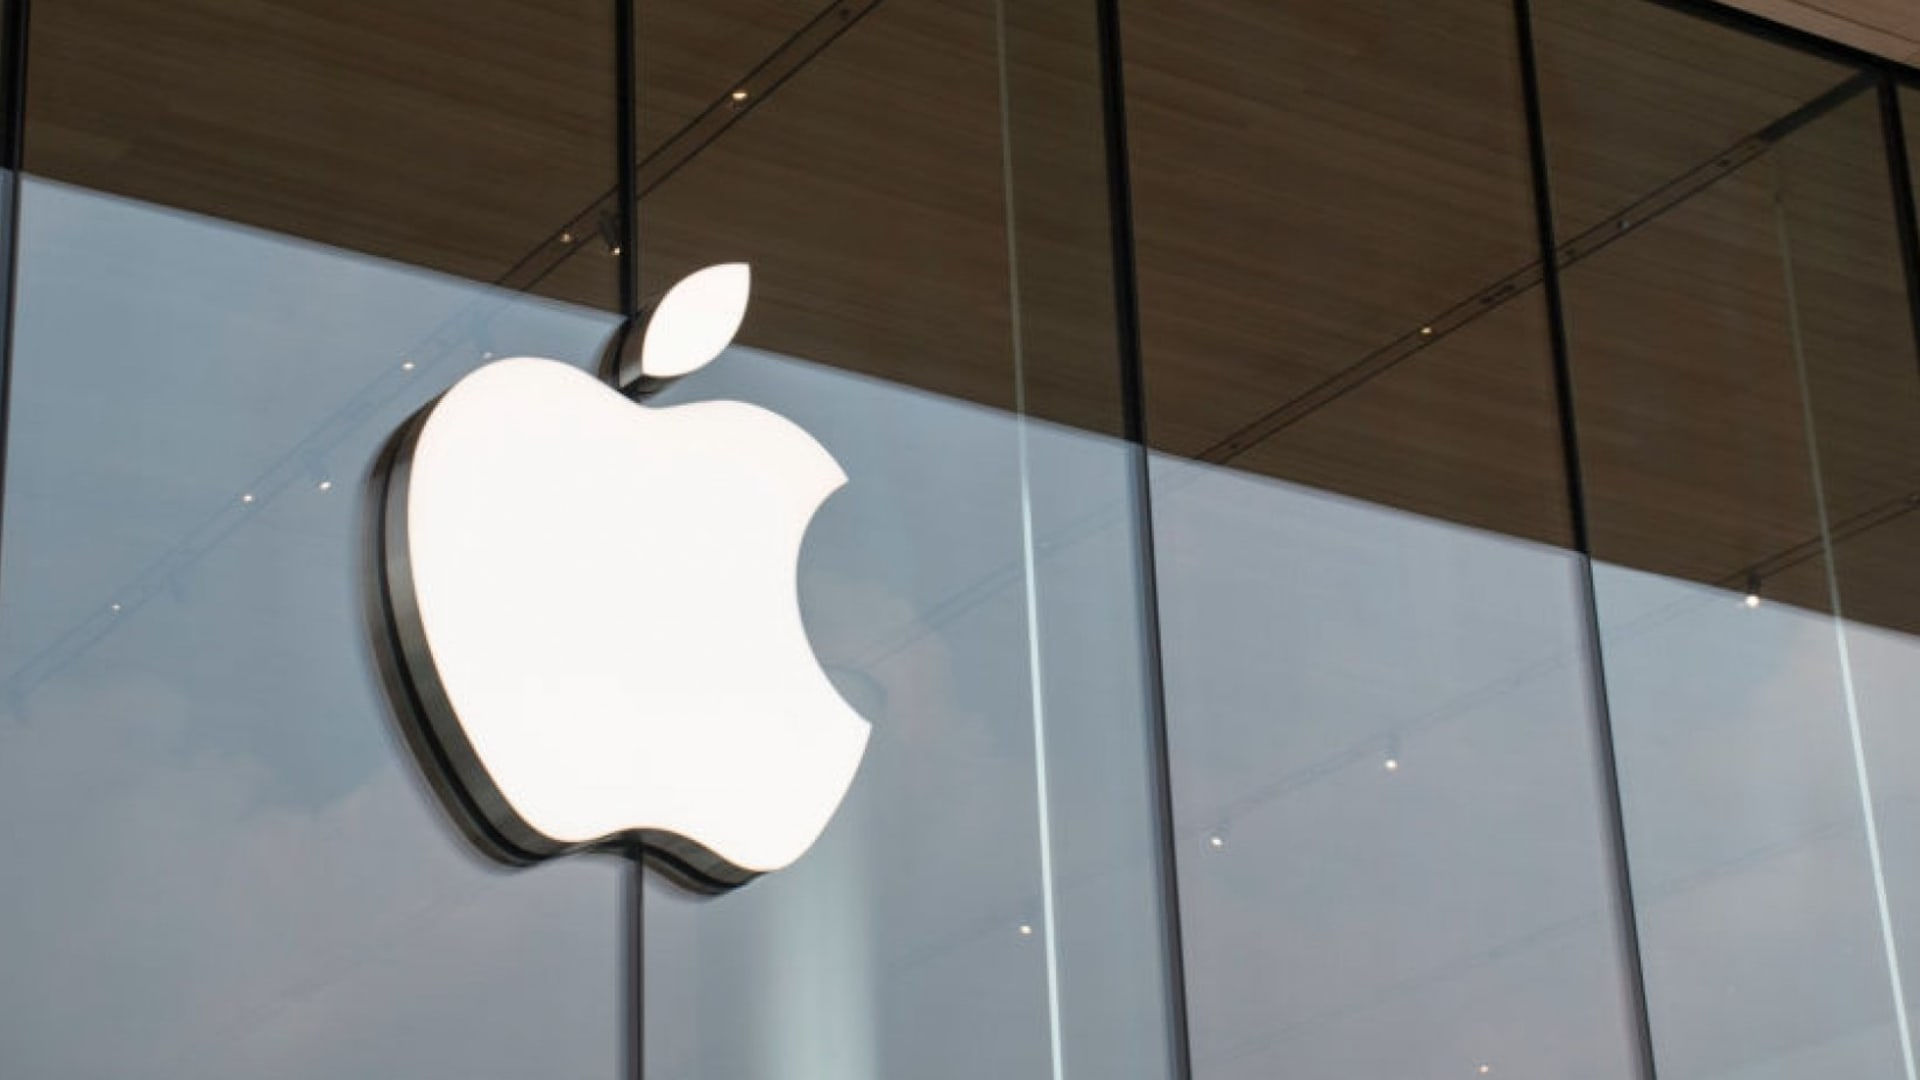 In Apple's Battle With Epic Games, No One Is Talking About the Only Thing That Matters